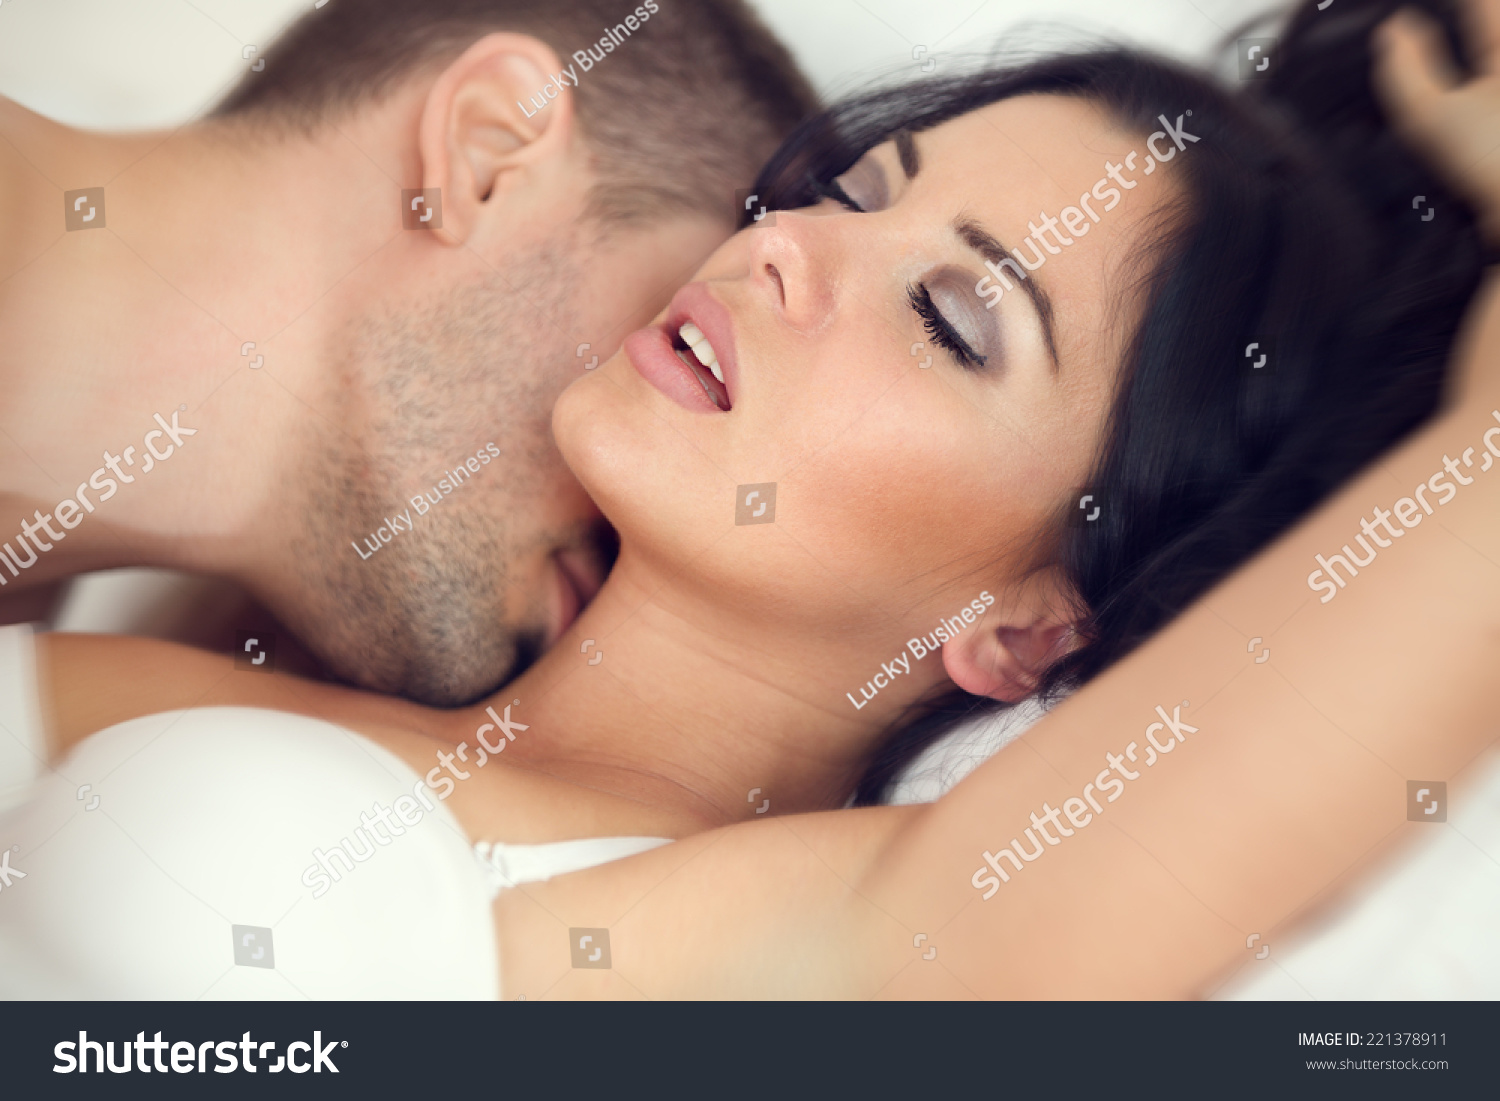 Couple making love and enjoying loads of fres